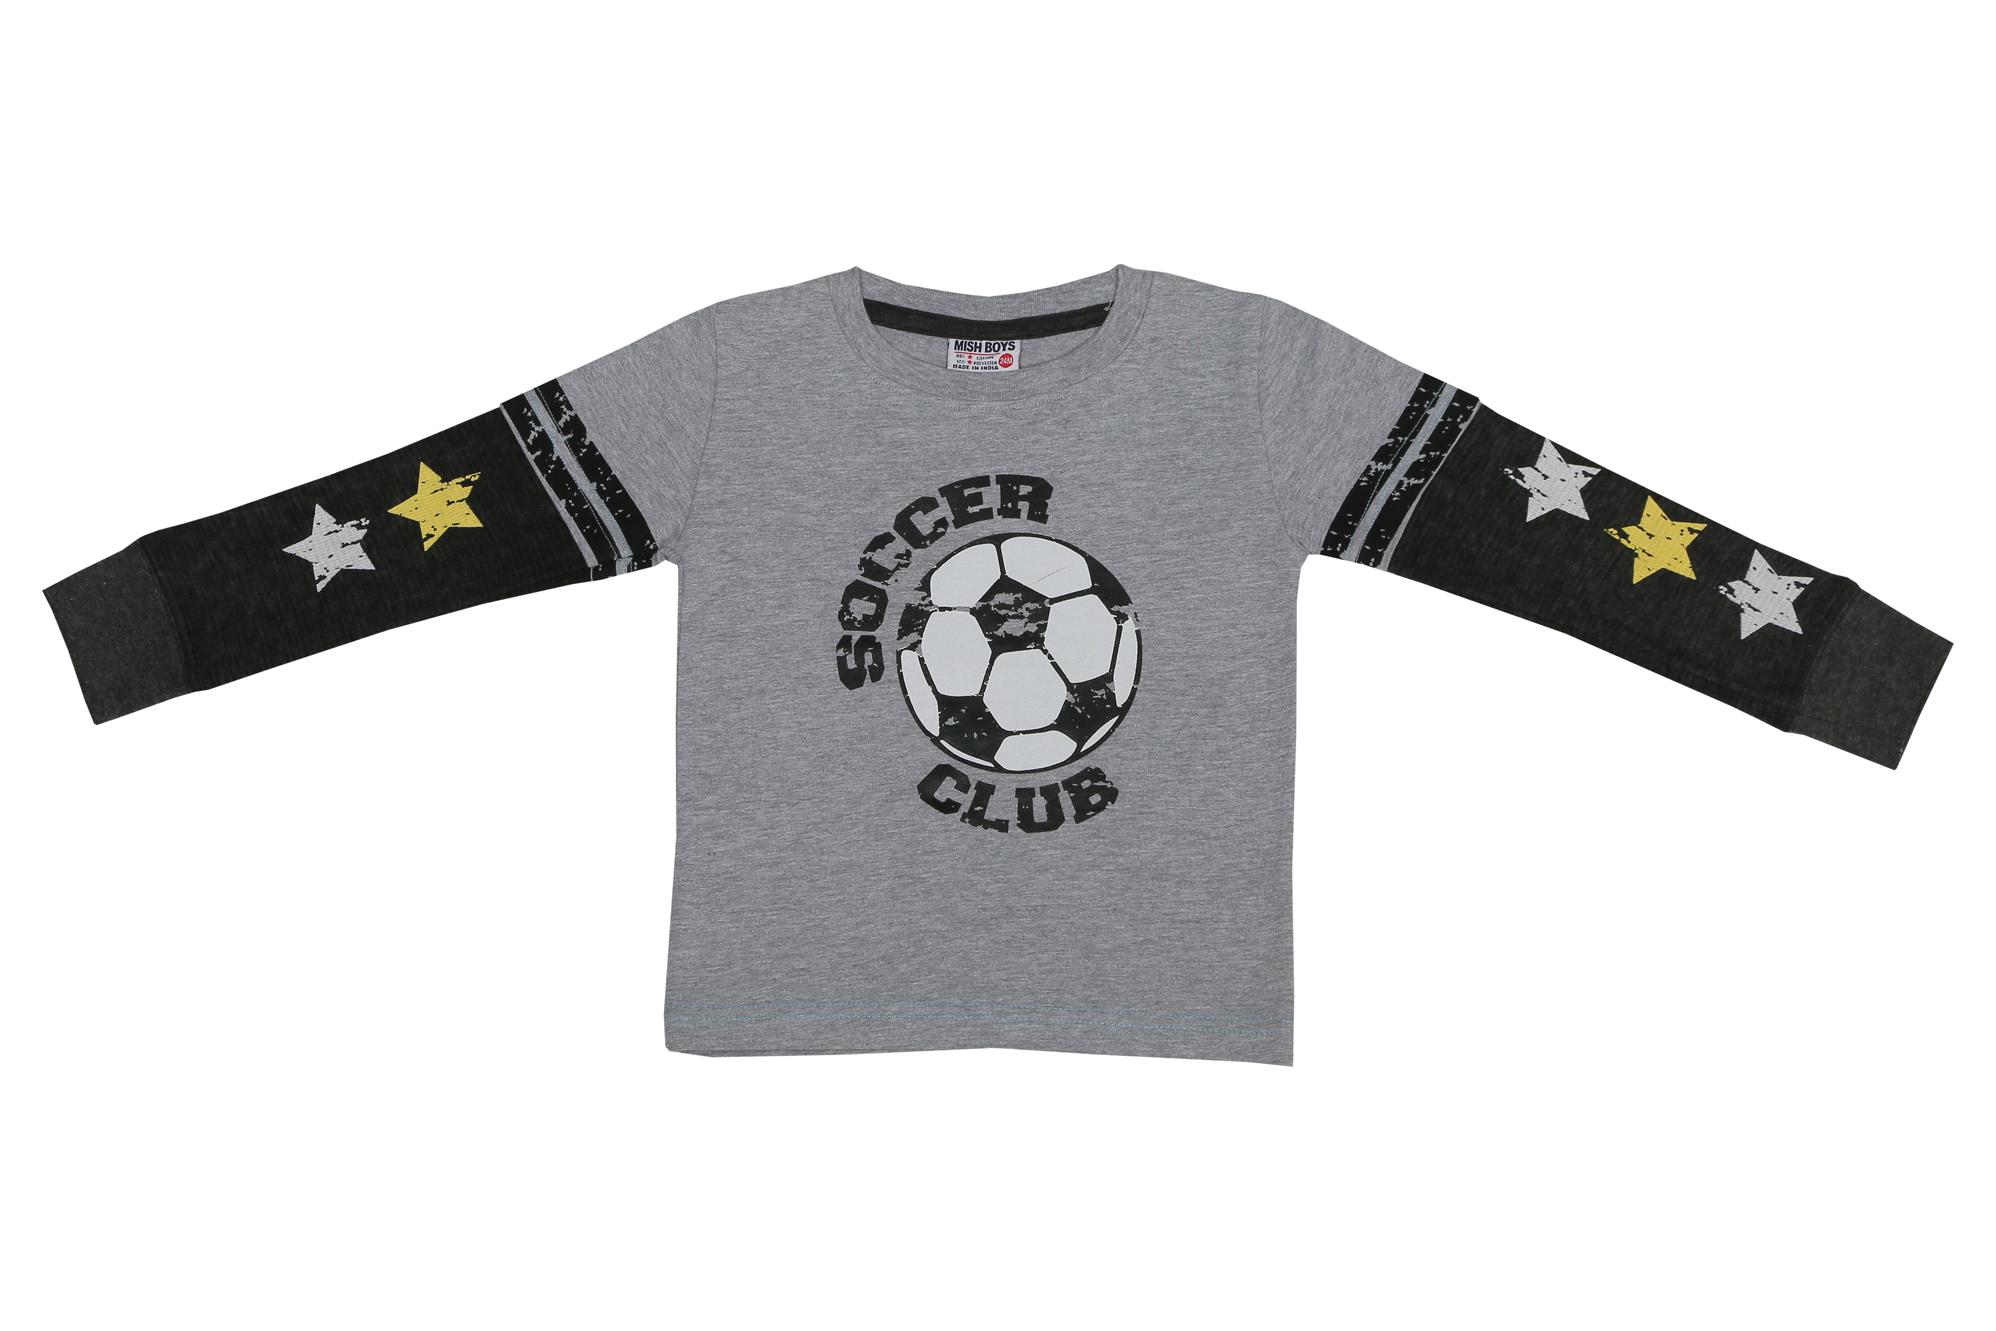 32754fe7a Mish Mish Boys Thermal Sleeves - Soccer Club